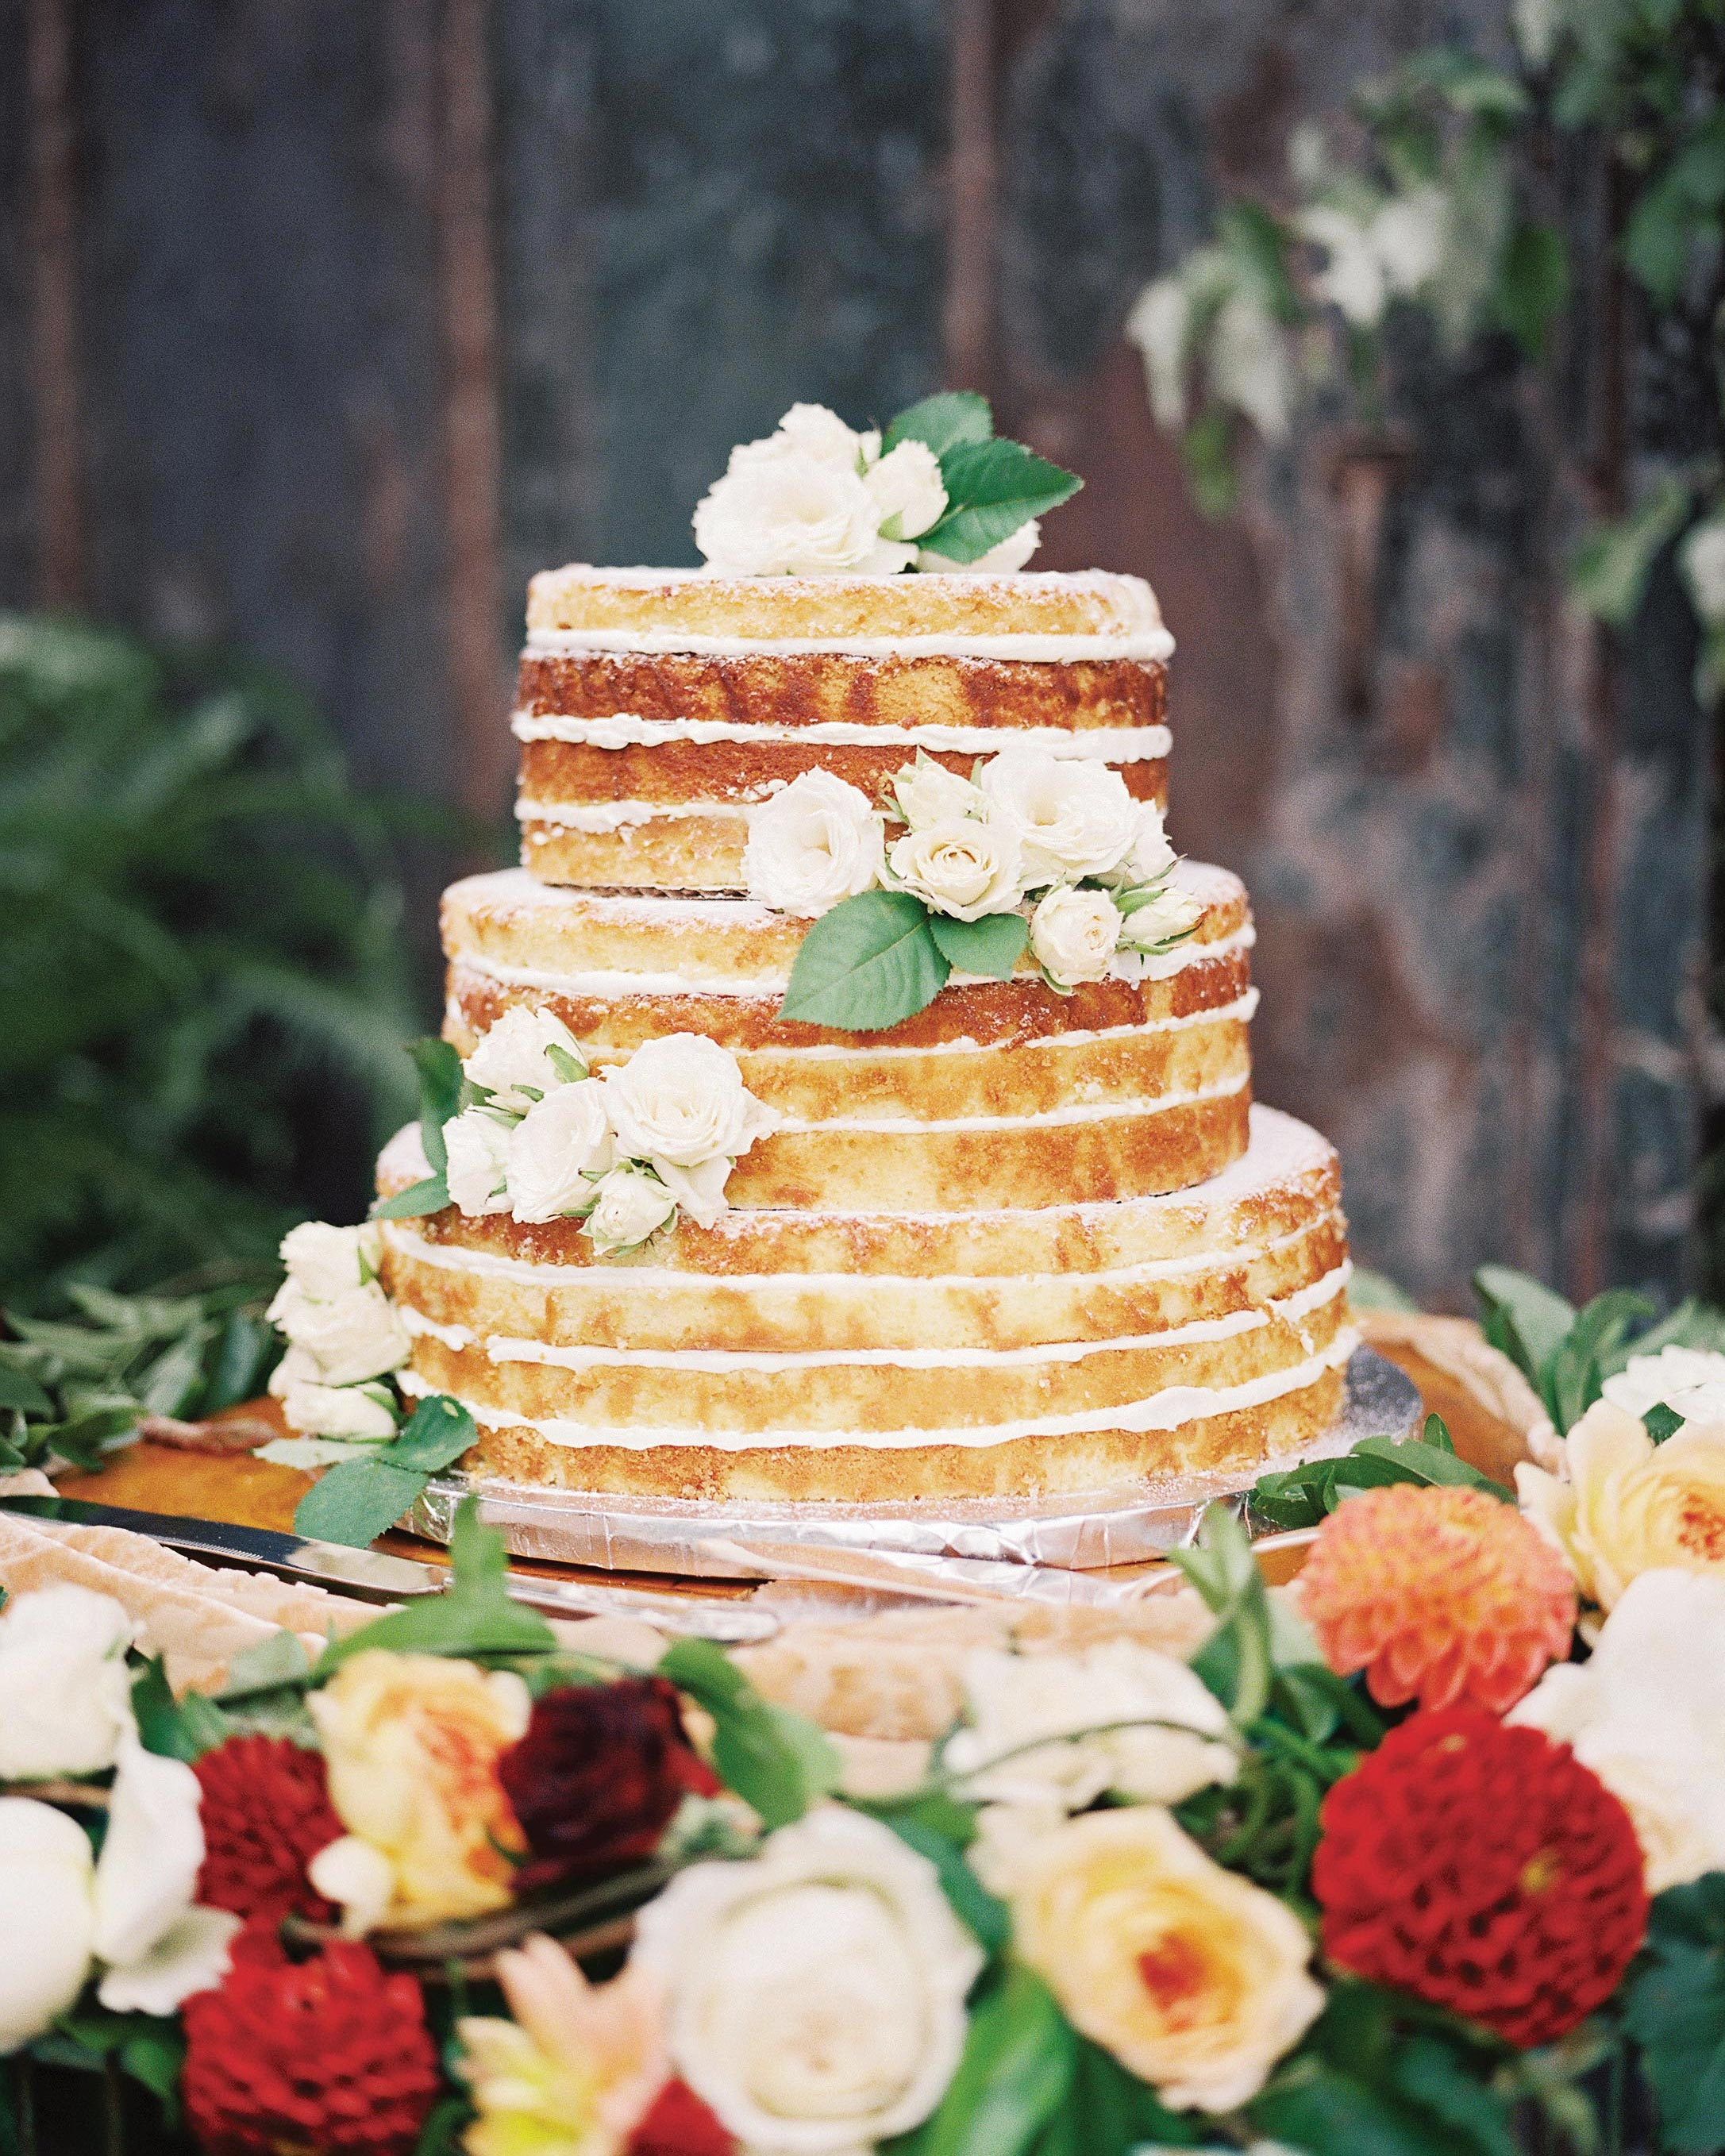 stephanie-mike-wedding-north-carolina-naked-cake-flowers-75-s112048.jpg